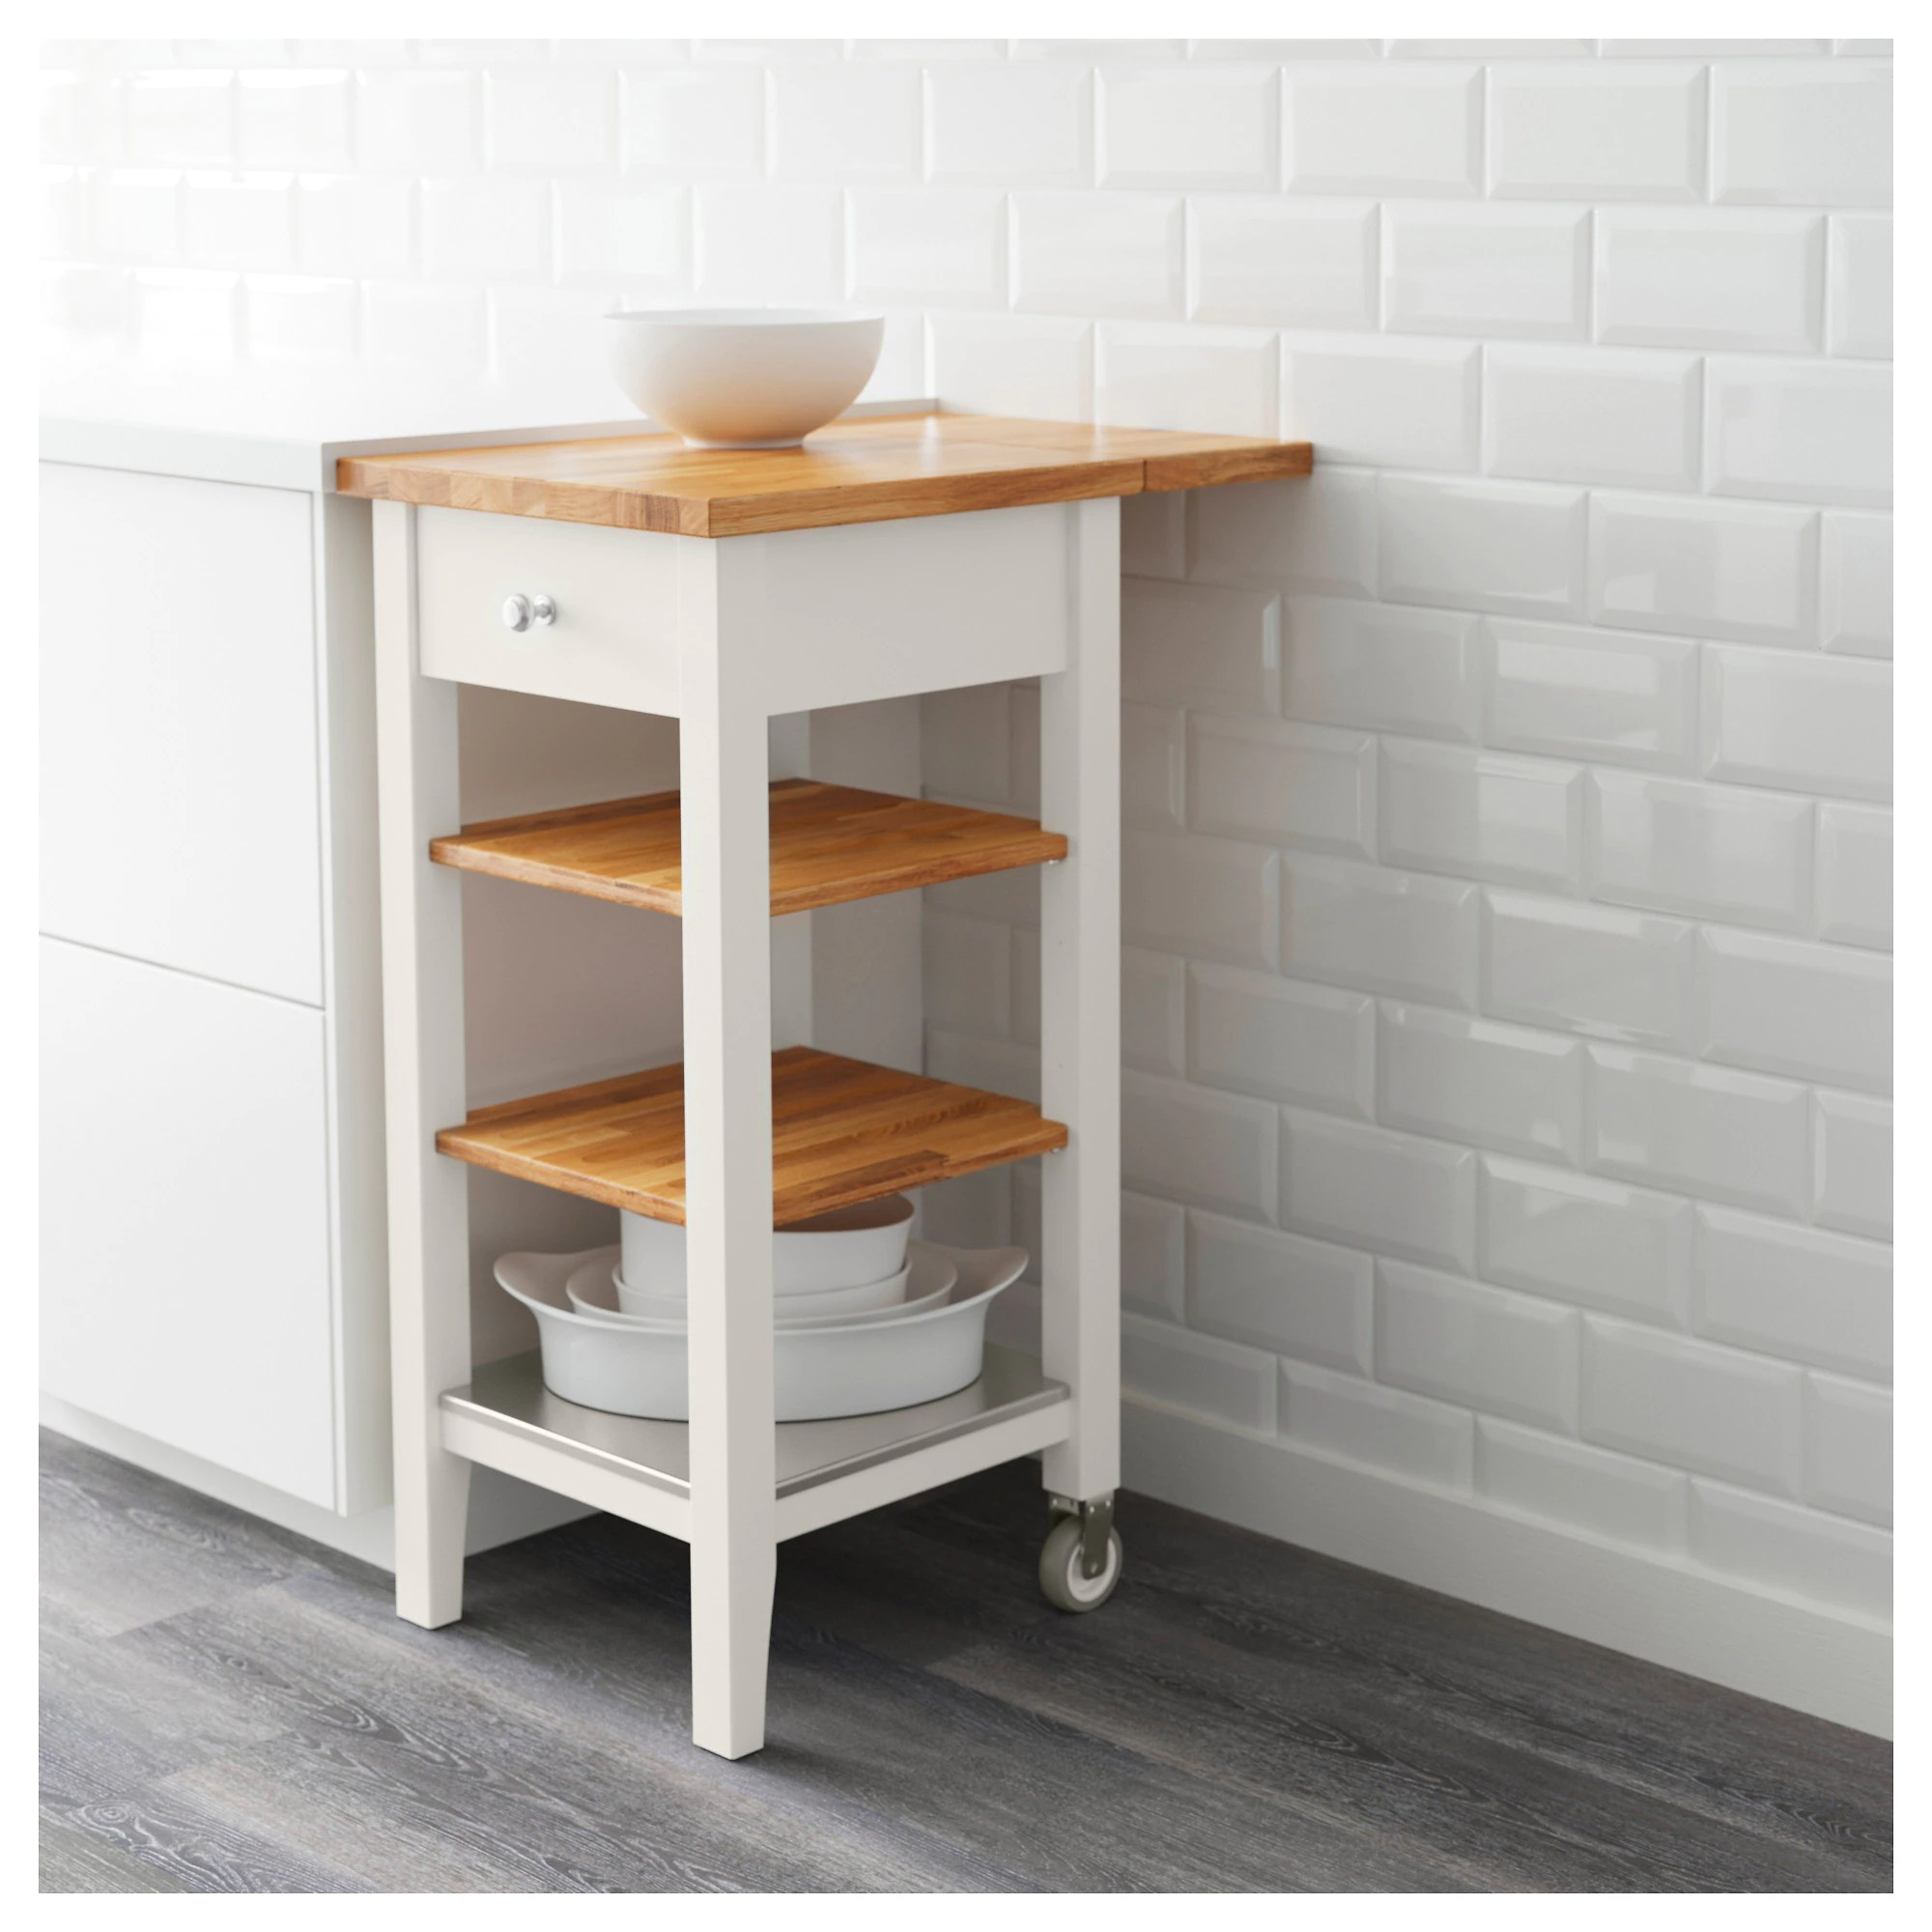 kitchen trolley value city sets stenstorp ikea